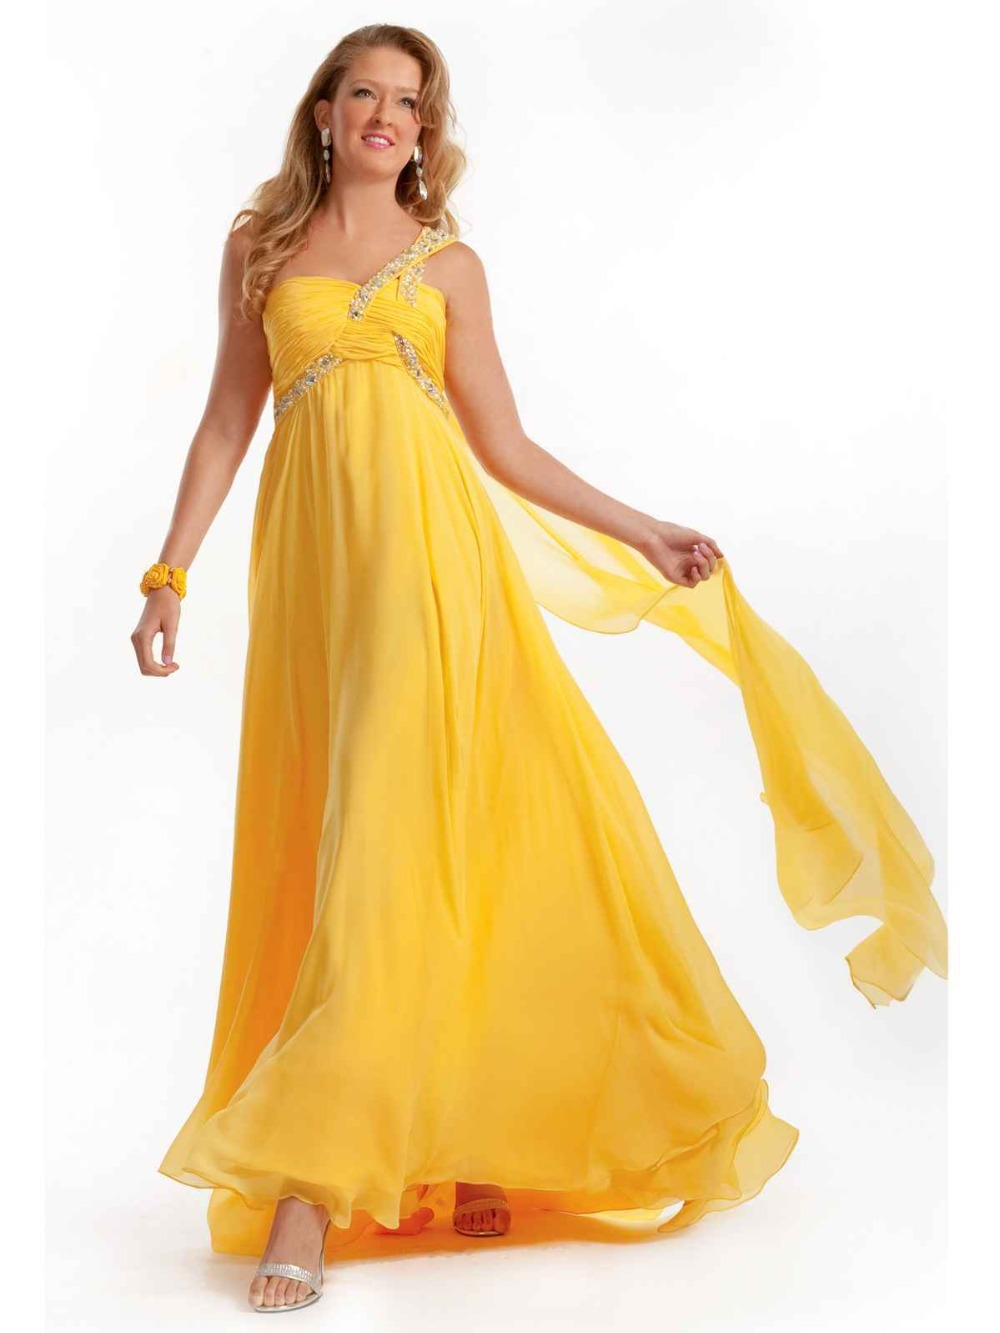 Long Evening Dress Crystal Beaded Evening Gown One Shoulder Empire Open Back Chiffon Yellow Prom Dresses Robe De Soiree JING375